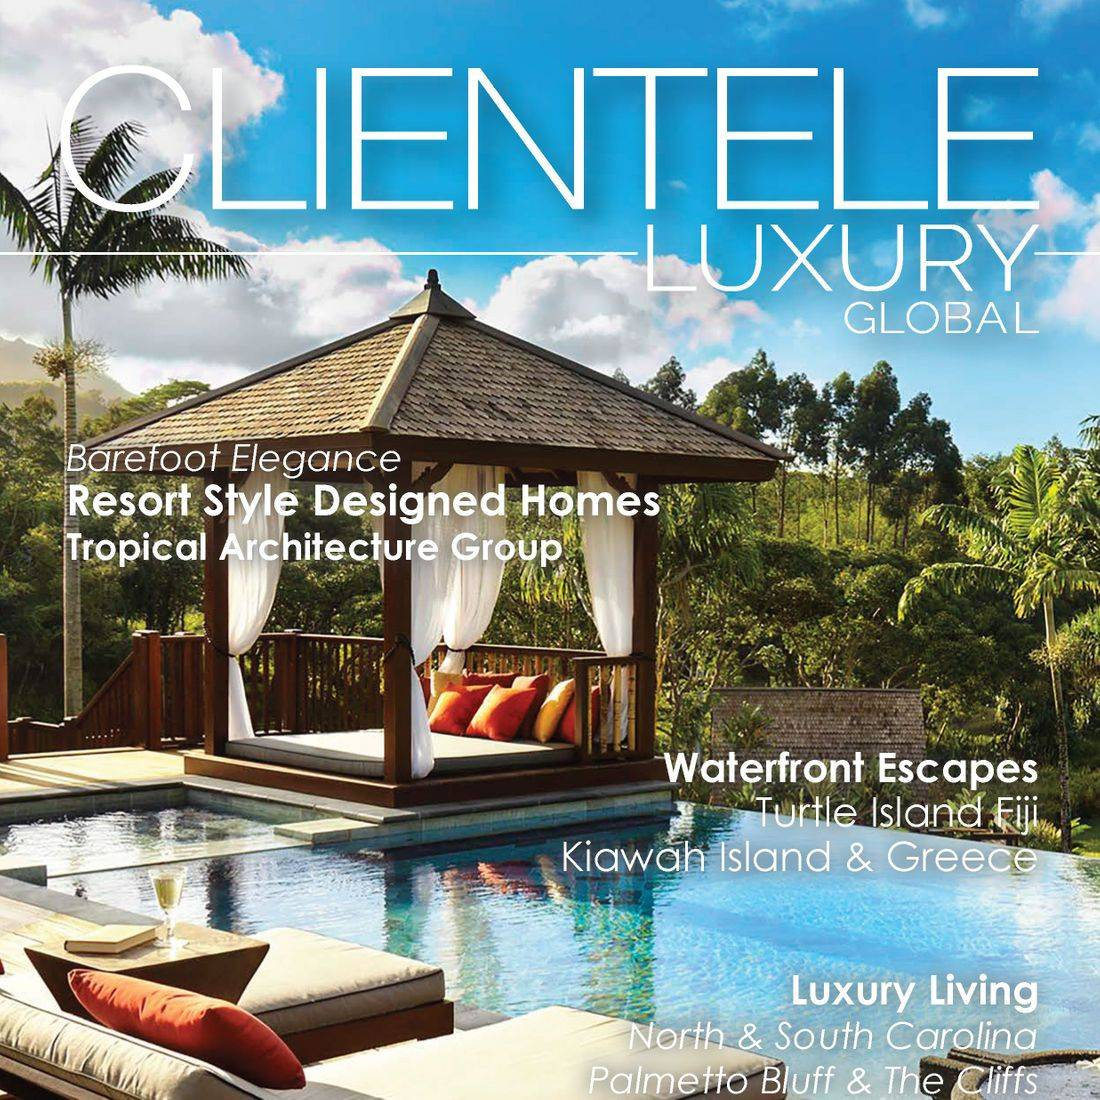 Clientele Luxury